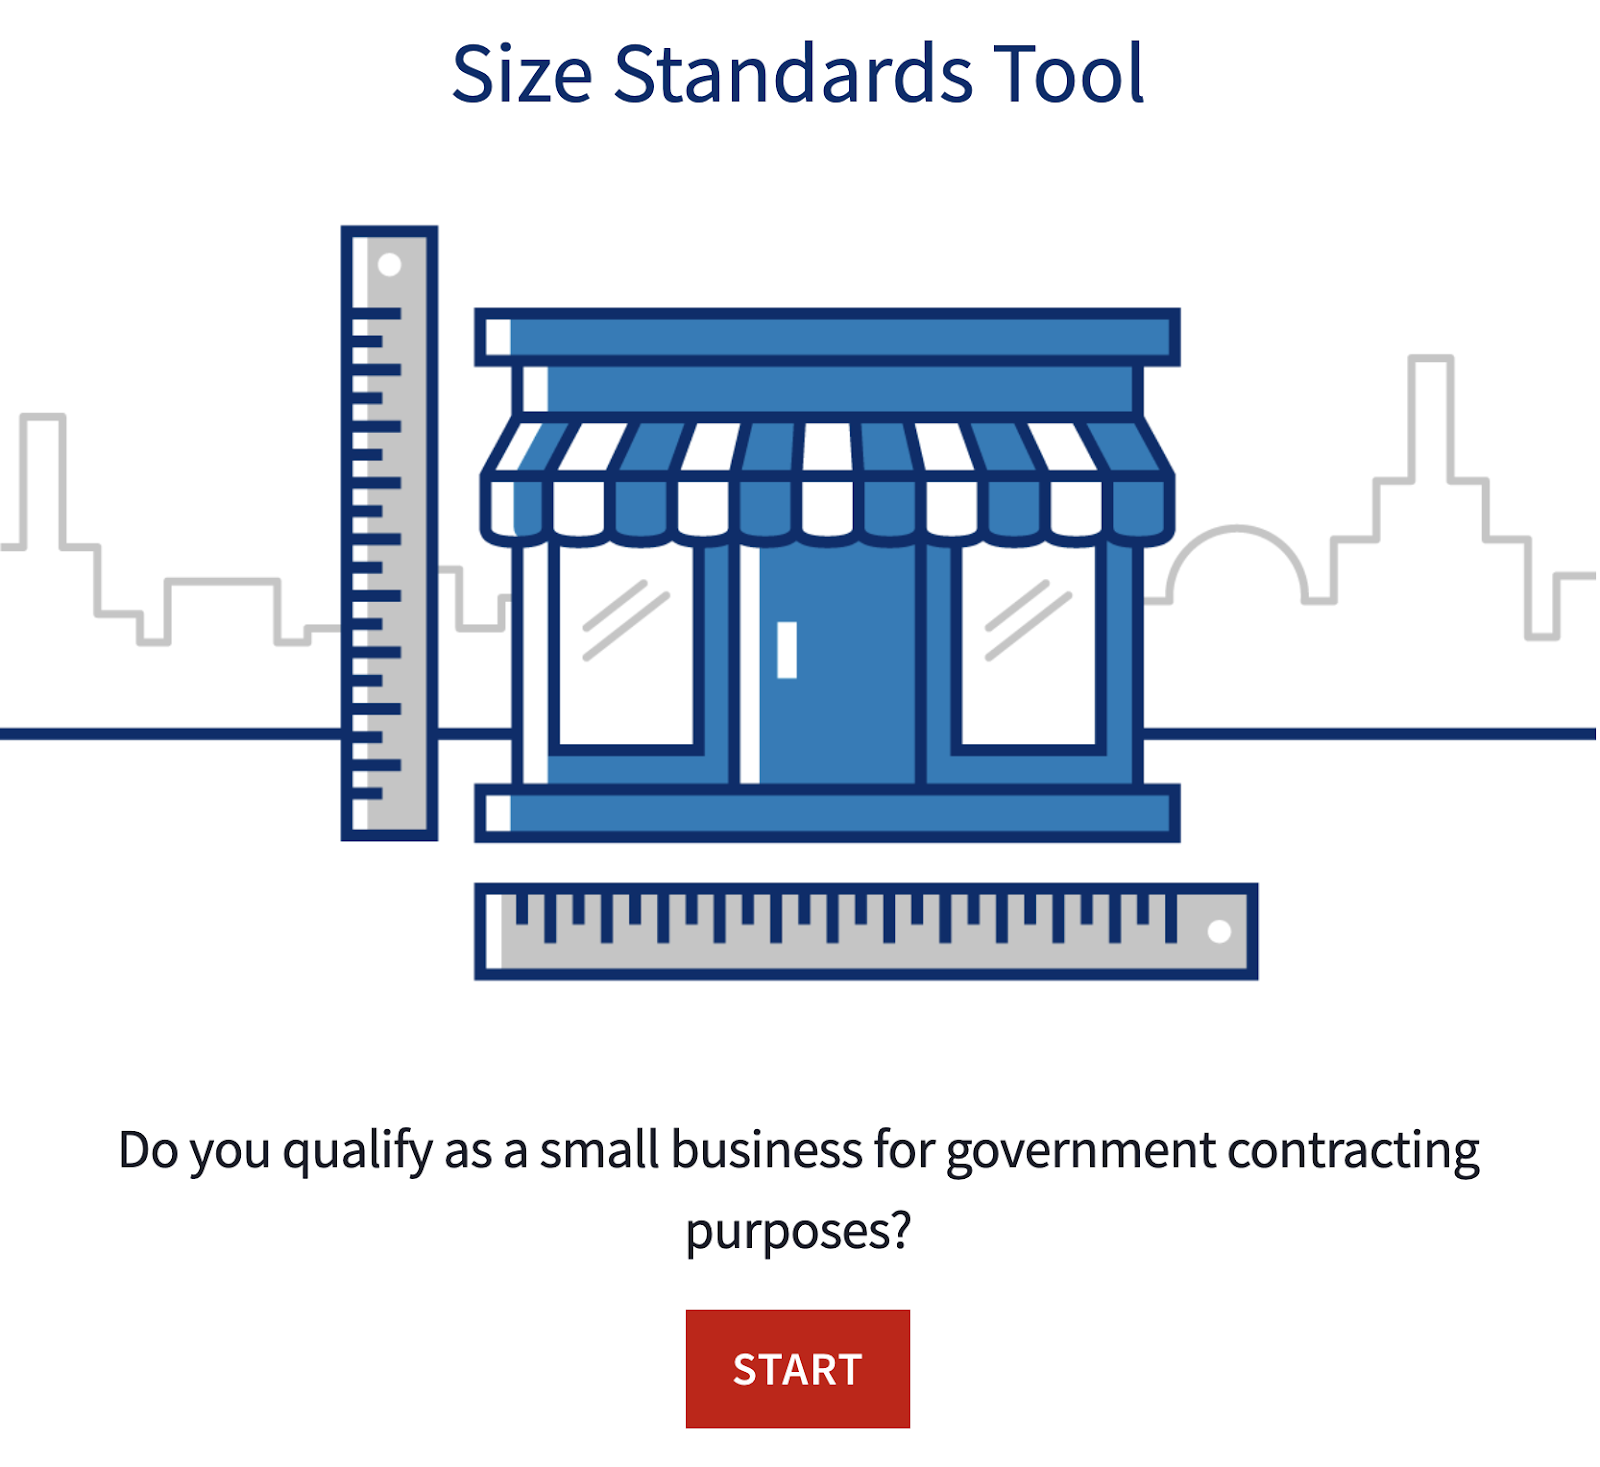 SBA Size Standards Tool